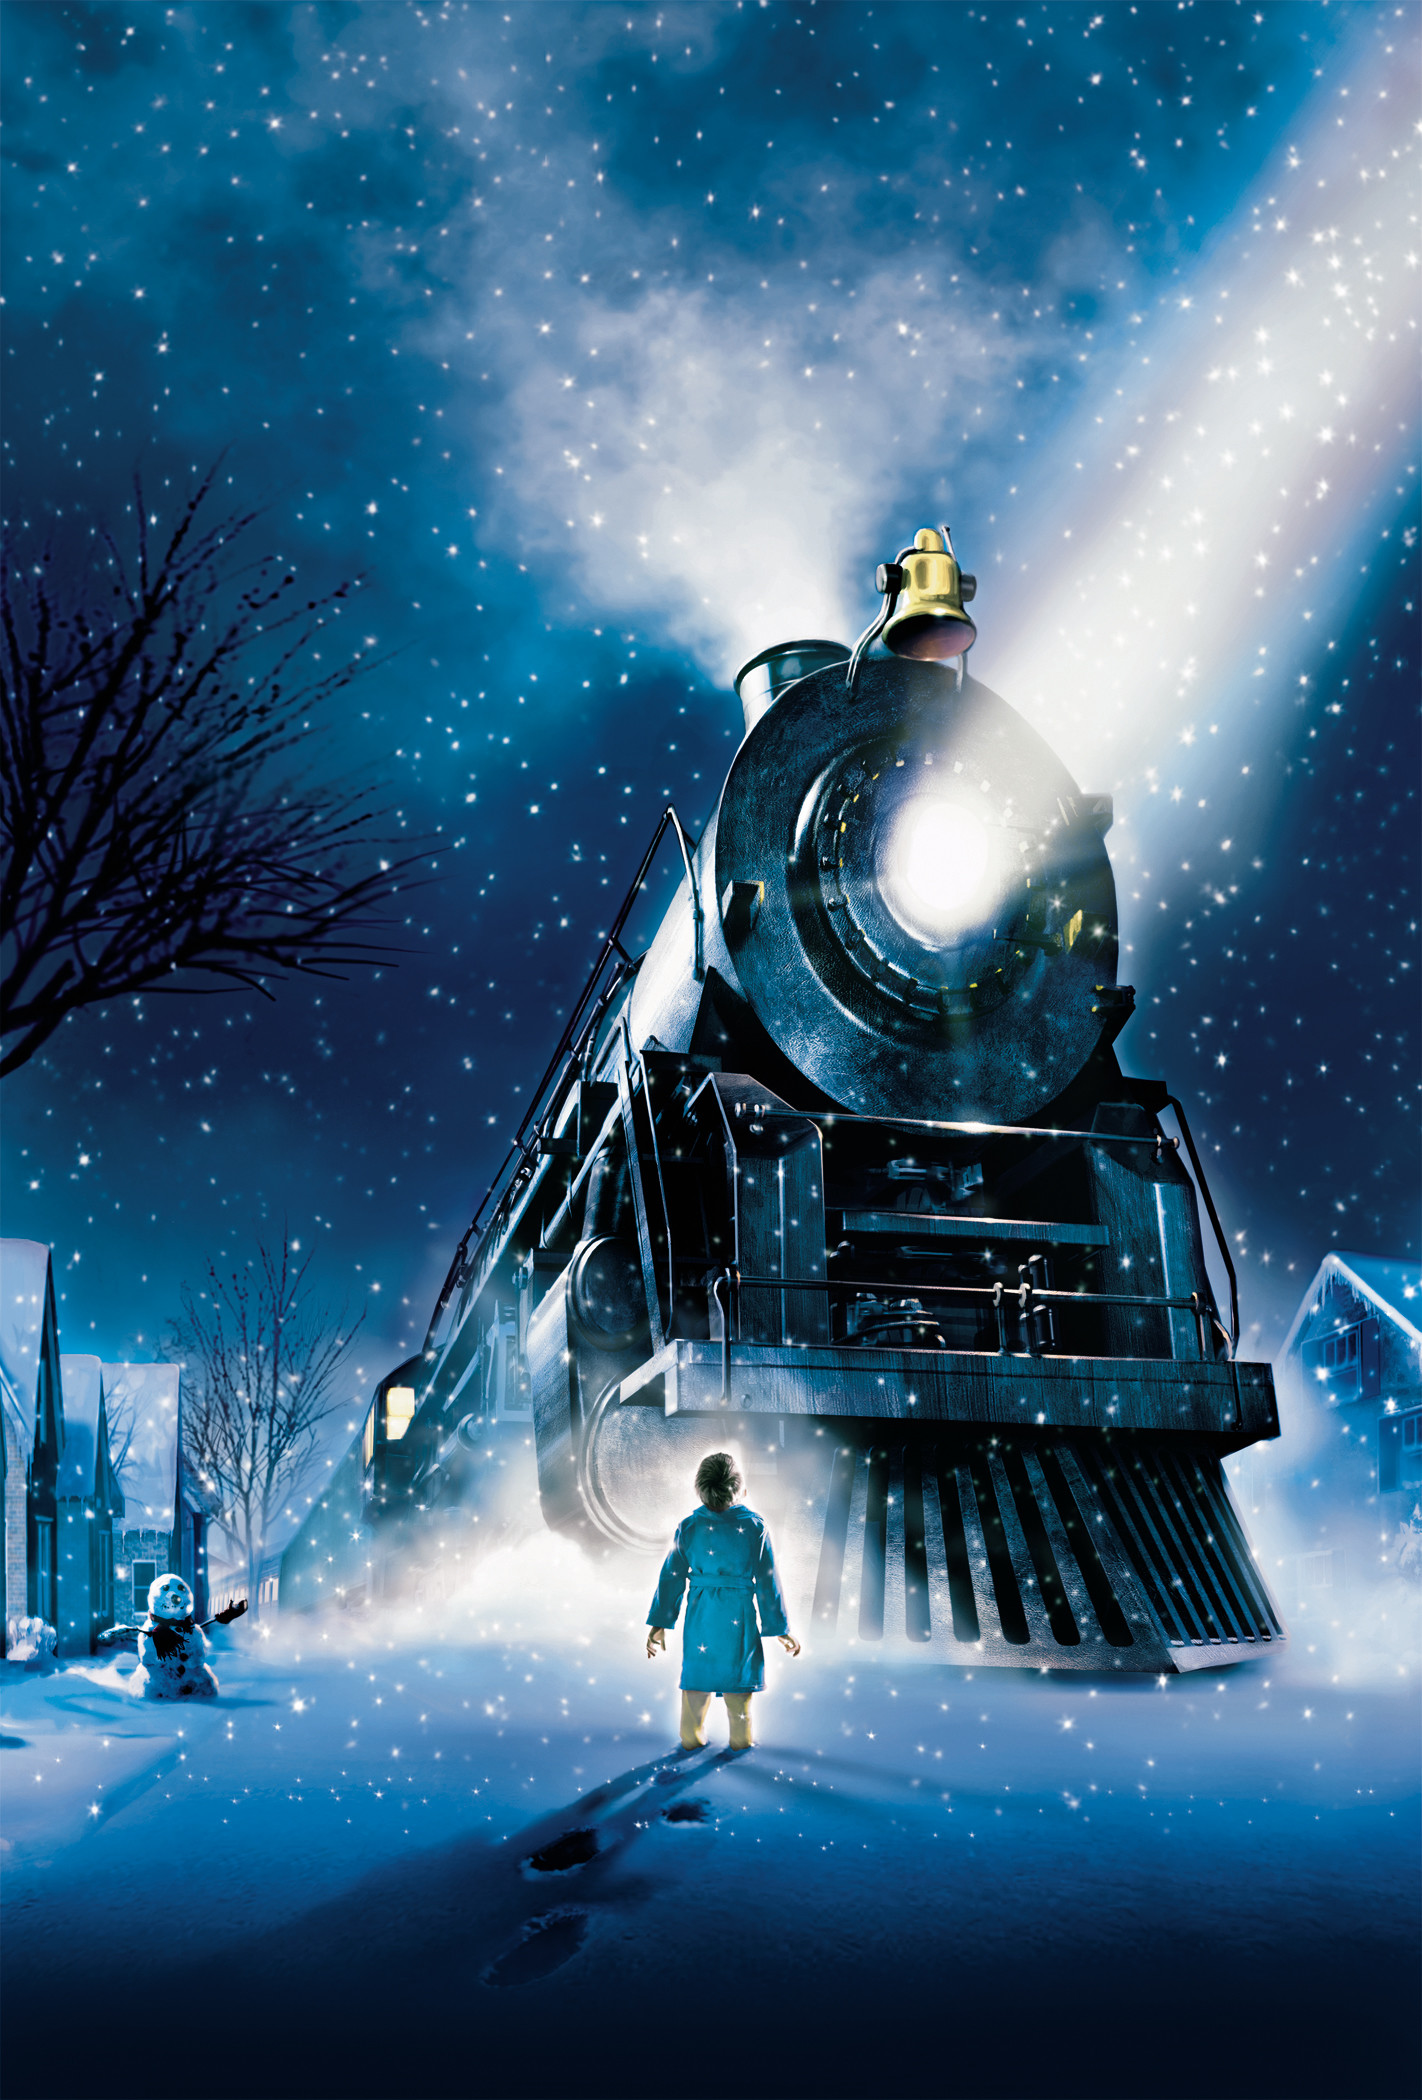 1422x2100 The Polar Express by Chris van Allsburg digital, contrapicado, luces frías  y colores fríos